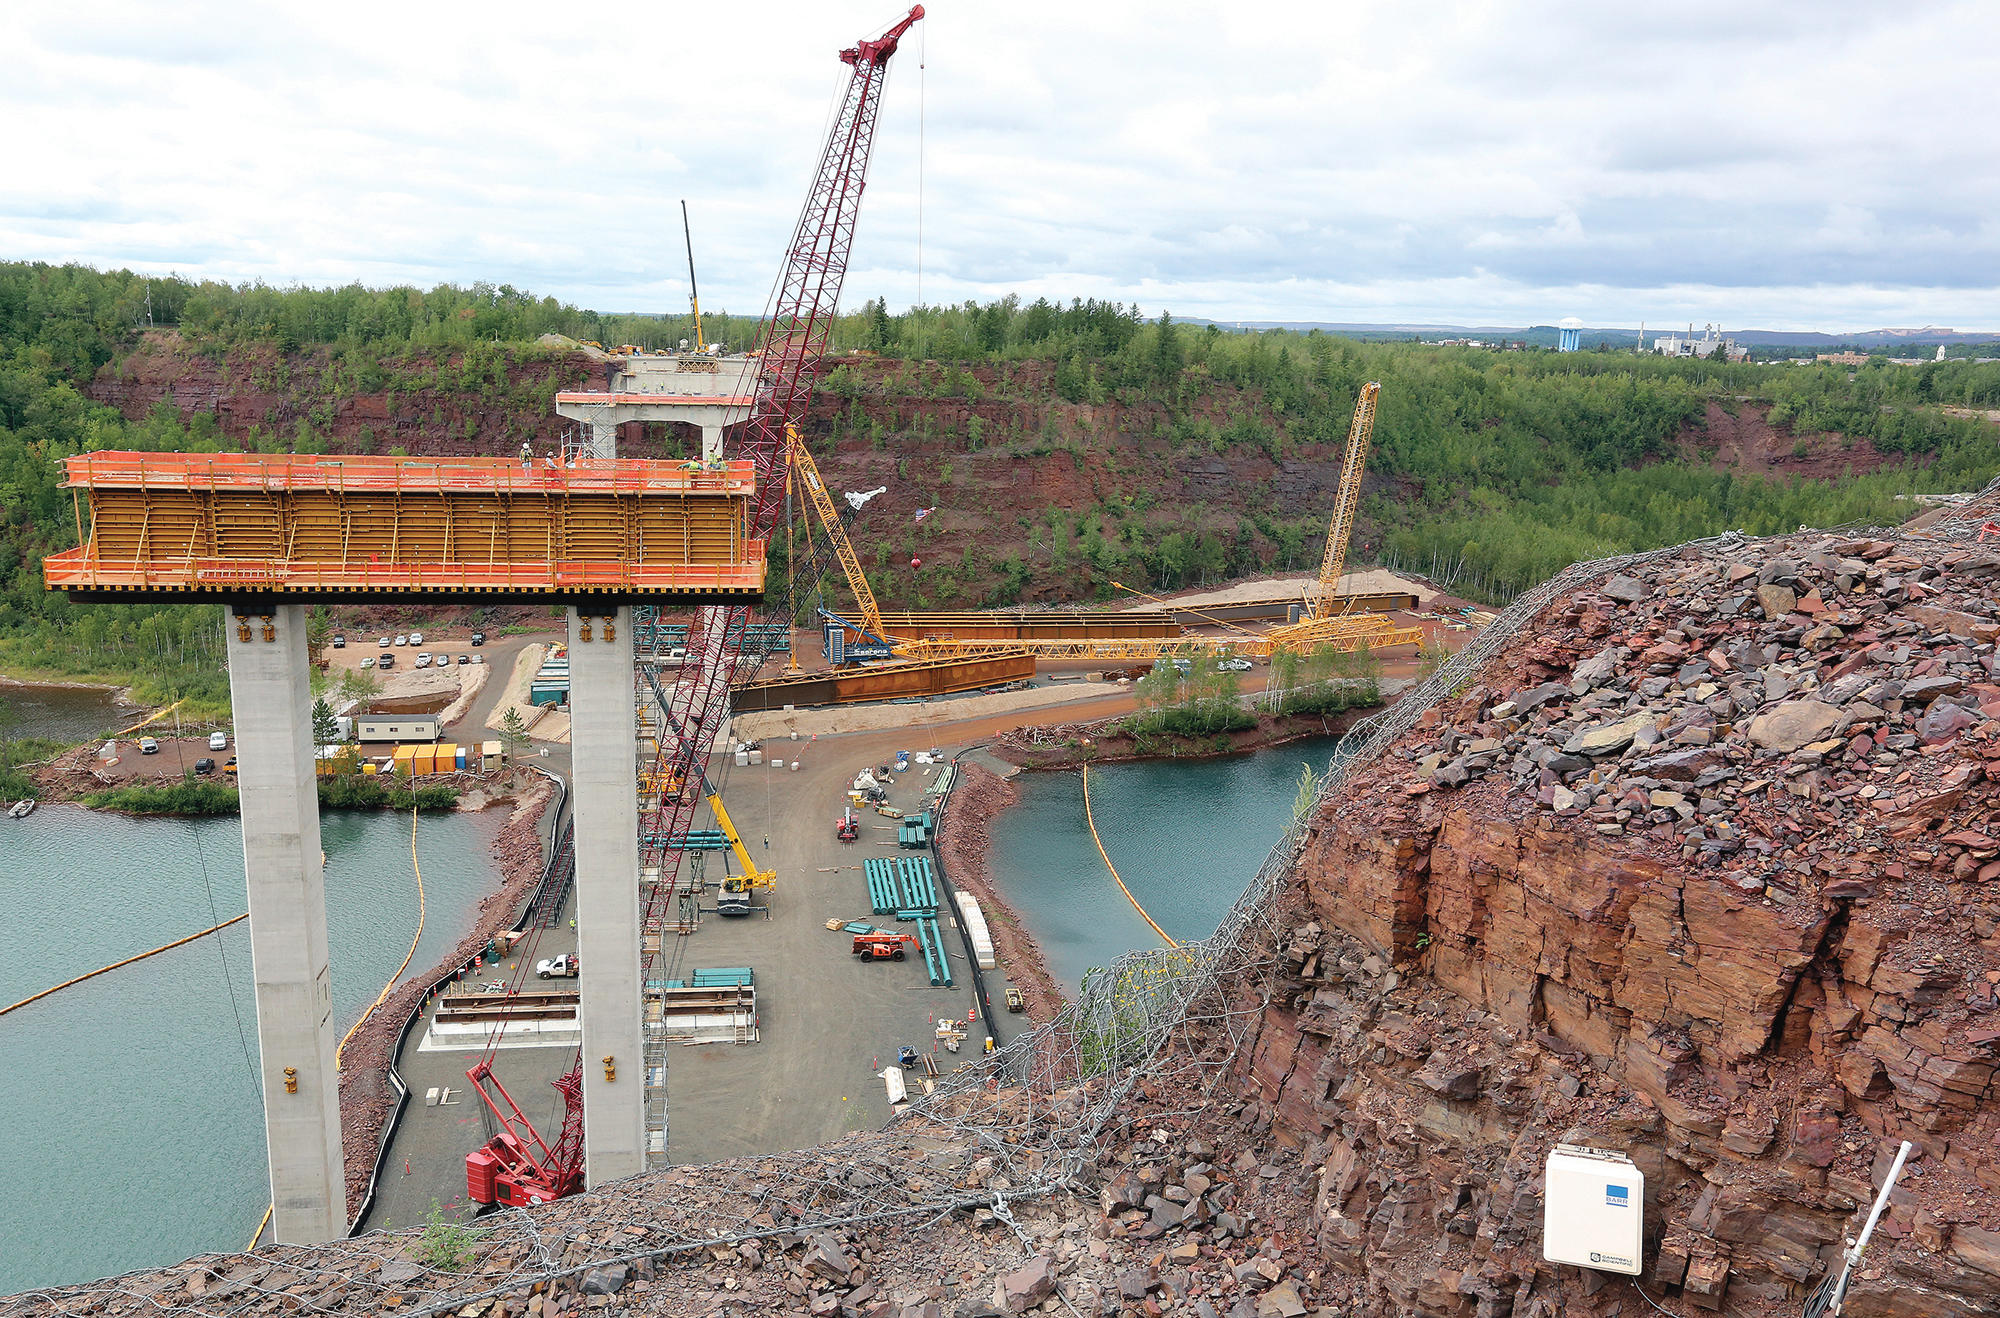 T08.24.2016 -- Steve Kuchera -- kucheraBRIDGE0827c1 -- Work is moving along on the U.S. Highway 53 Bridge over the Rouchleau pit in Virginia. Both piers are finished, with the east pier (foreground) raising 185 feet above the water. Workers will begin raising the bridge's beams next month. Steve Kuchera / skuchera@duluthnews.com